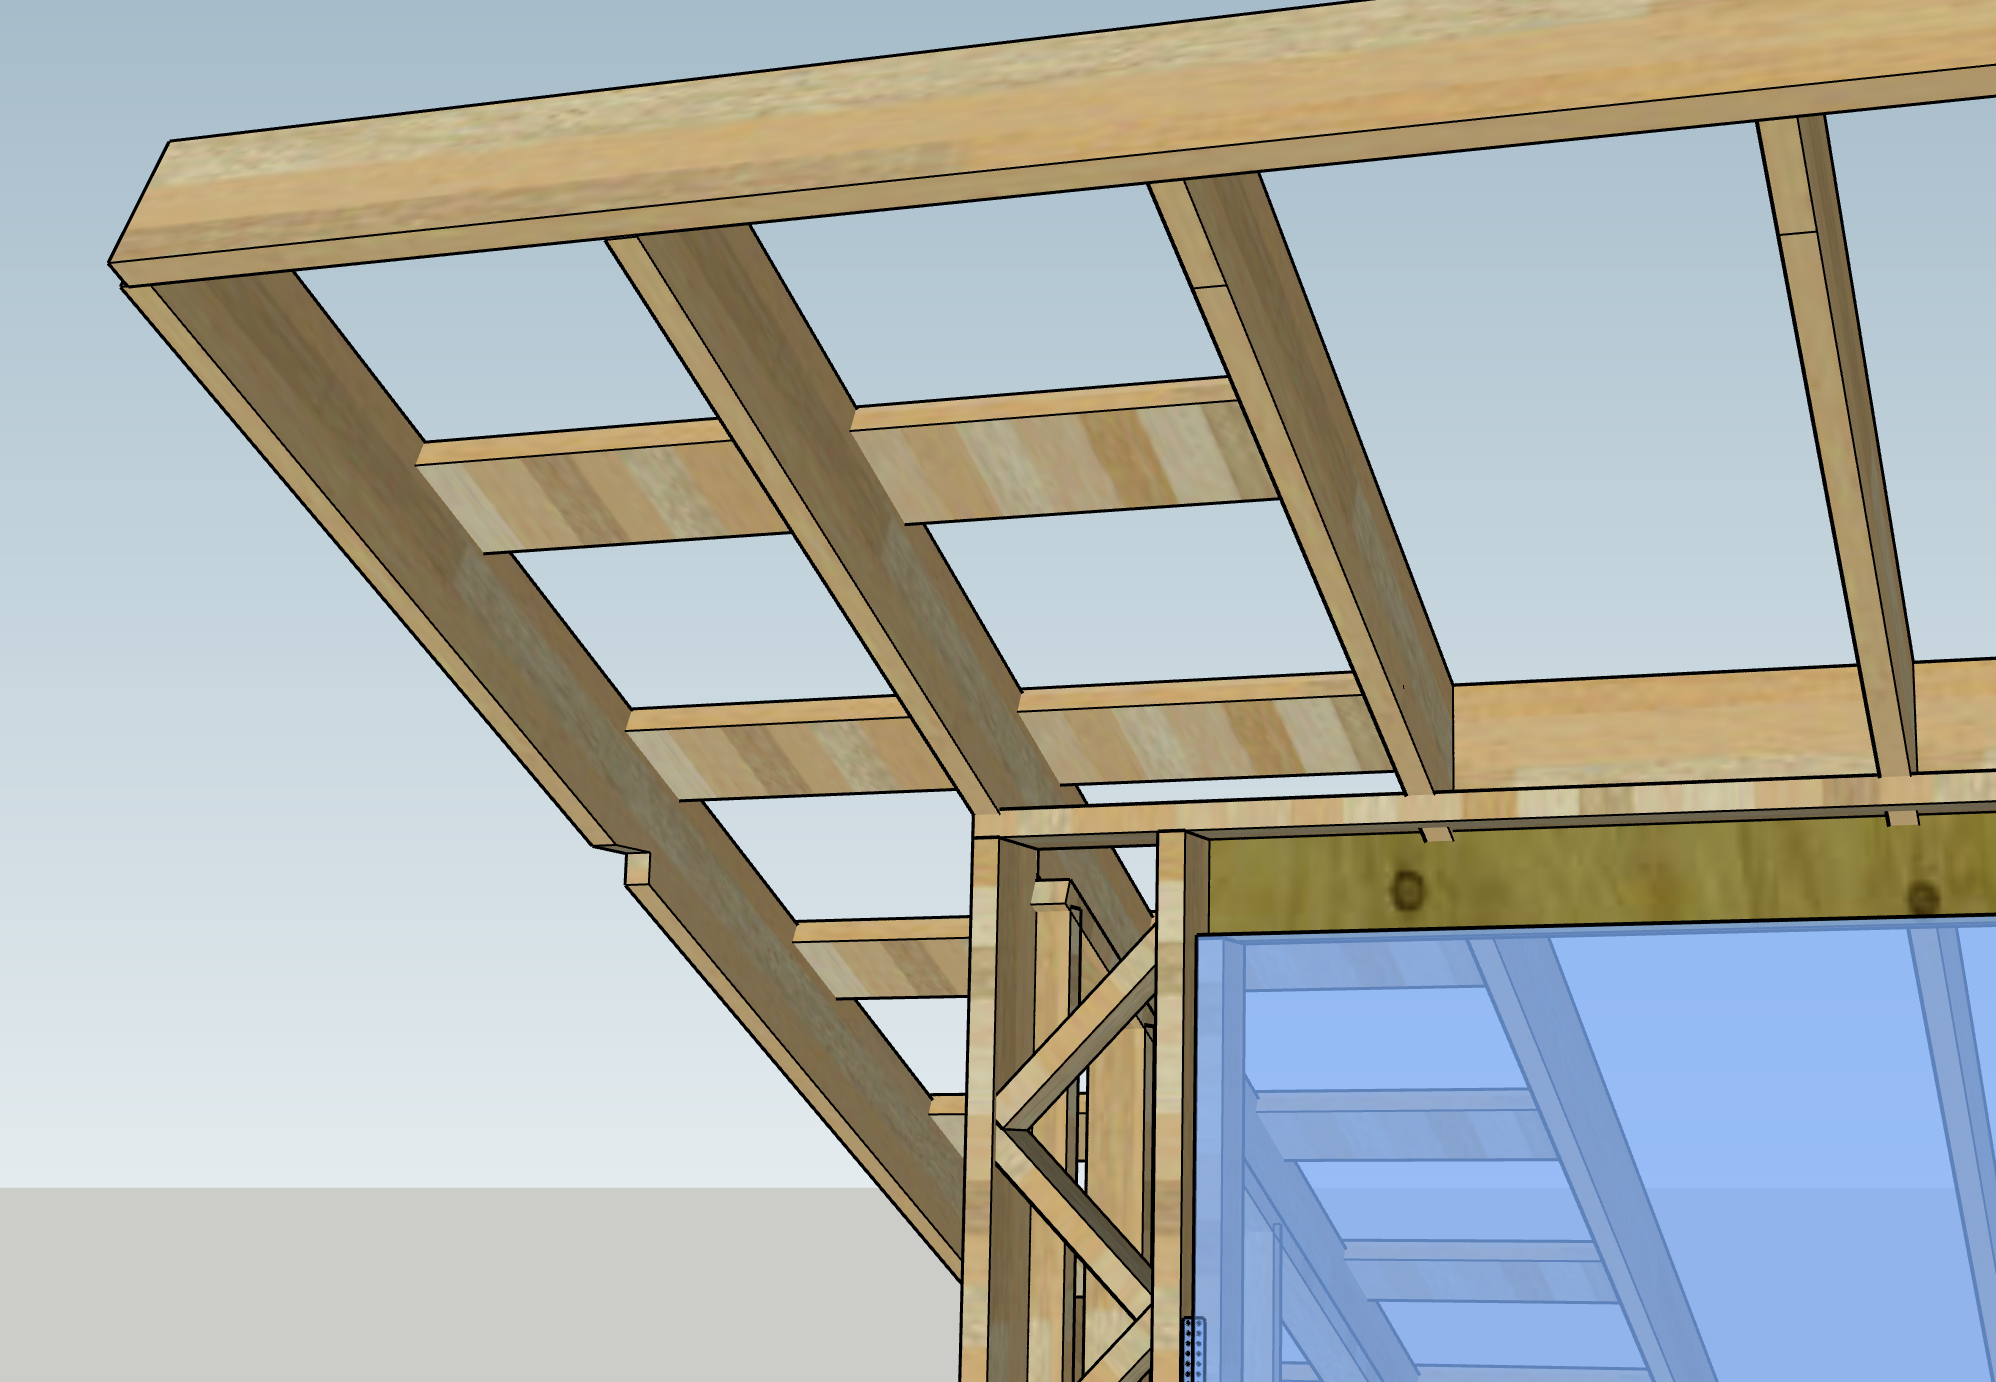 Shed / workshop framing design--is it too ambitious?-screen-shot-2020-04-26-1.10.01-pm.png